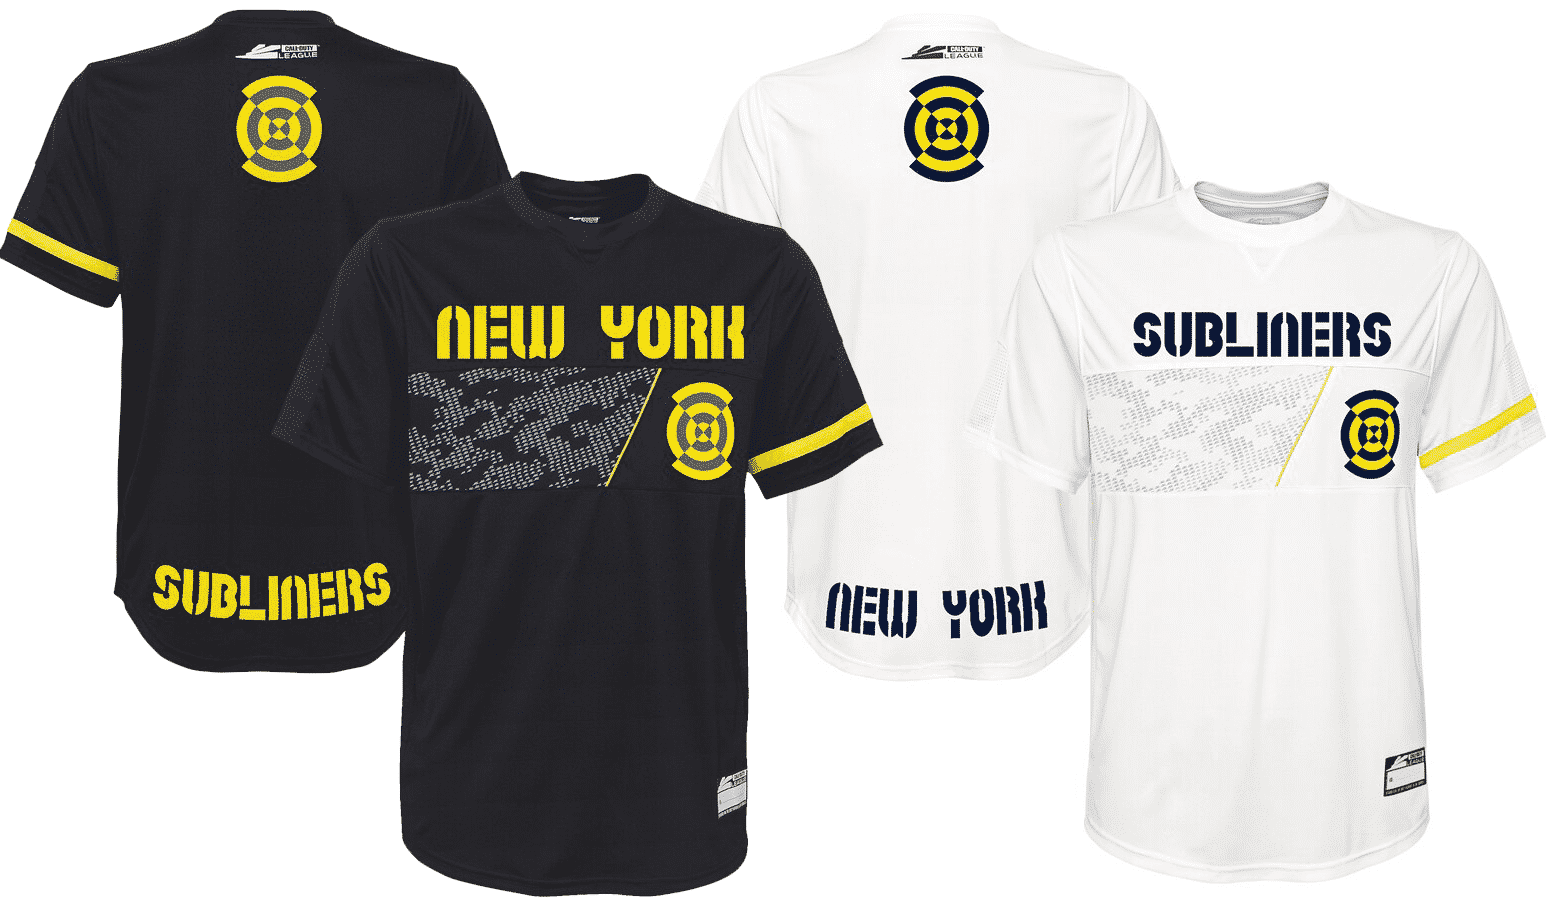 New York Subliners Jersey Call of Duty League 2020 Esports